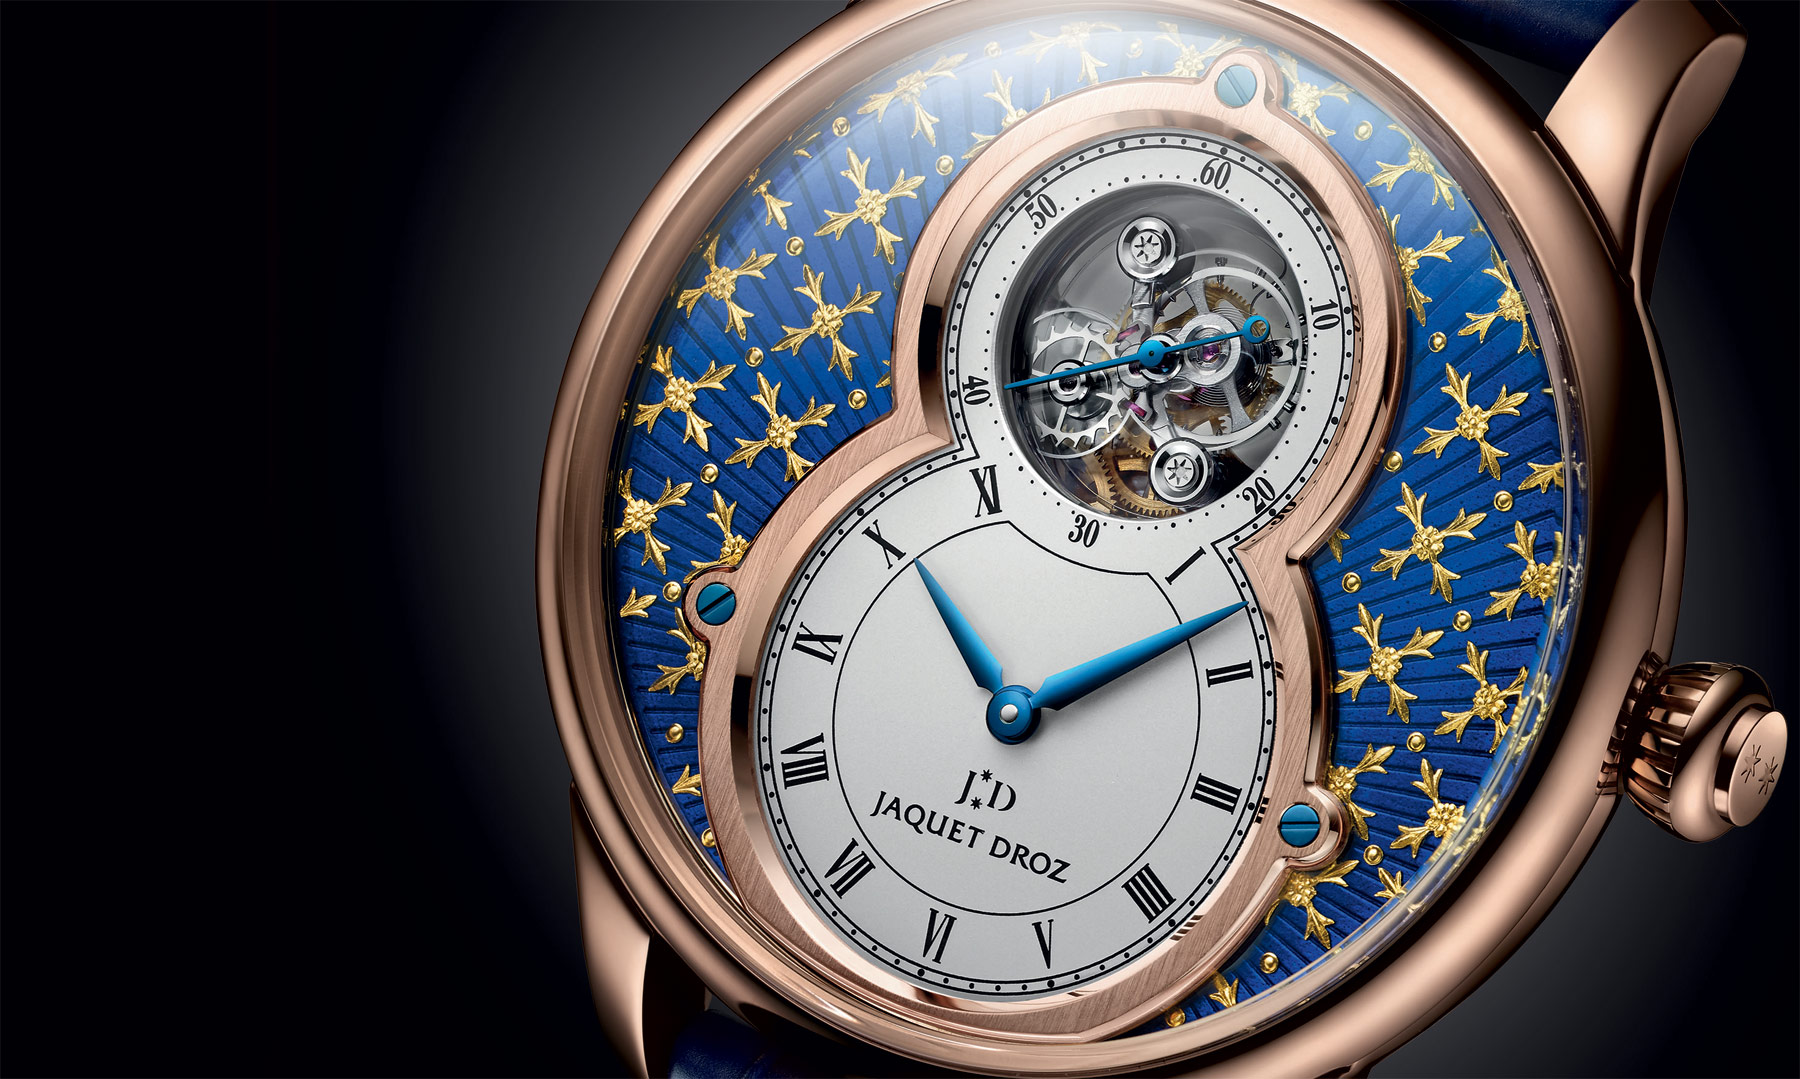 Jaquet Droz Pays Homage To The Art Of Paillonné Enameling